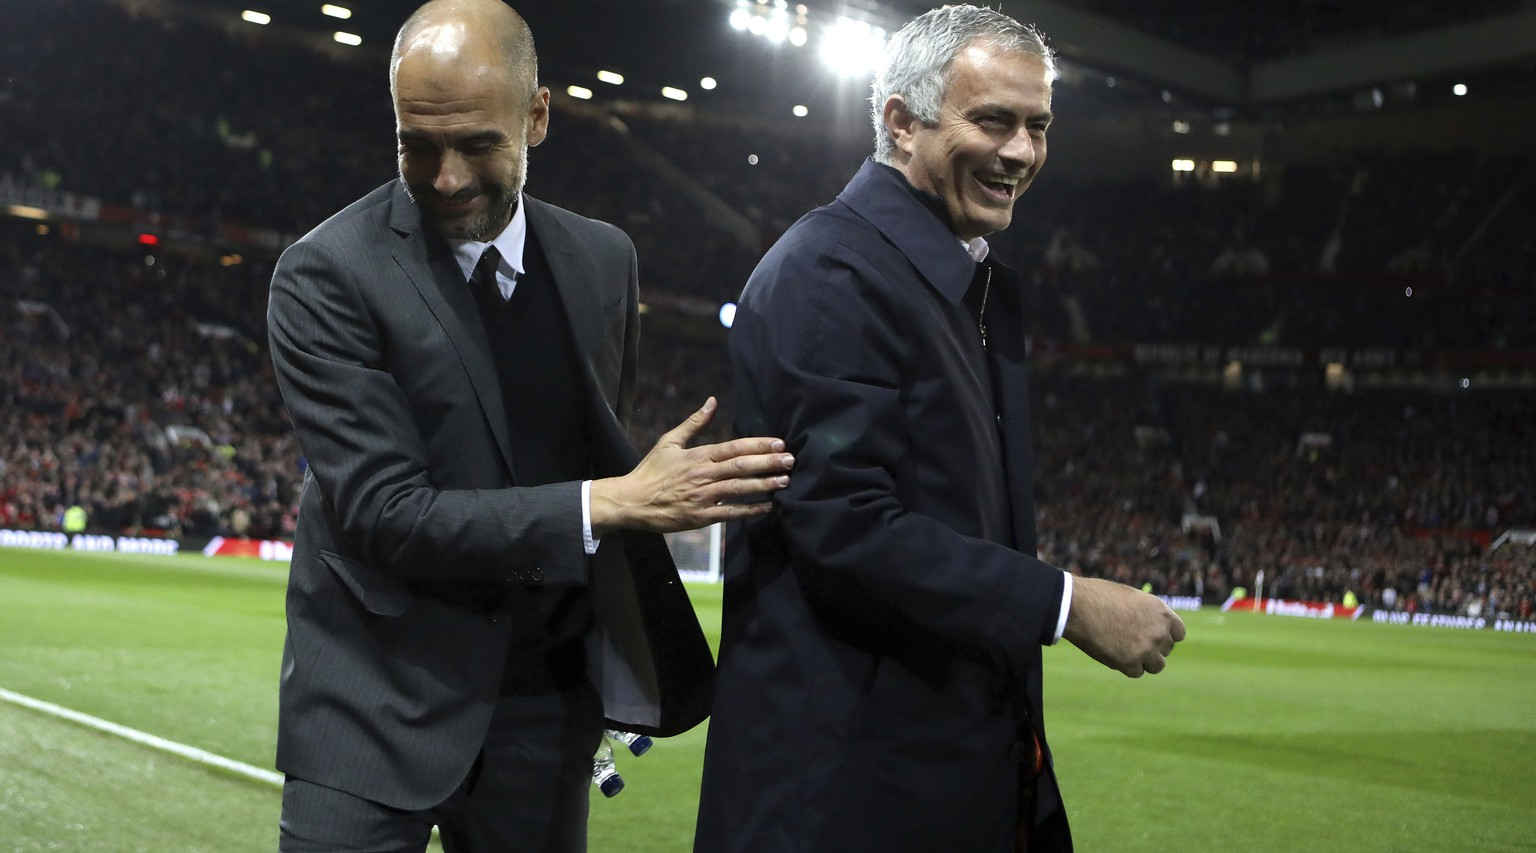 Manchester City's manager Pep Guardiola, left, and Manchester United's manager Jose Mourinho smile ahead of the English League Cup soccer match between Manchester United and Manchester City at Old Trafford stadium in Manchester, Wednesday, Oct. 26, 2016. (AP Photo/Dave Thompson)